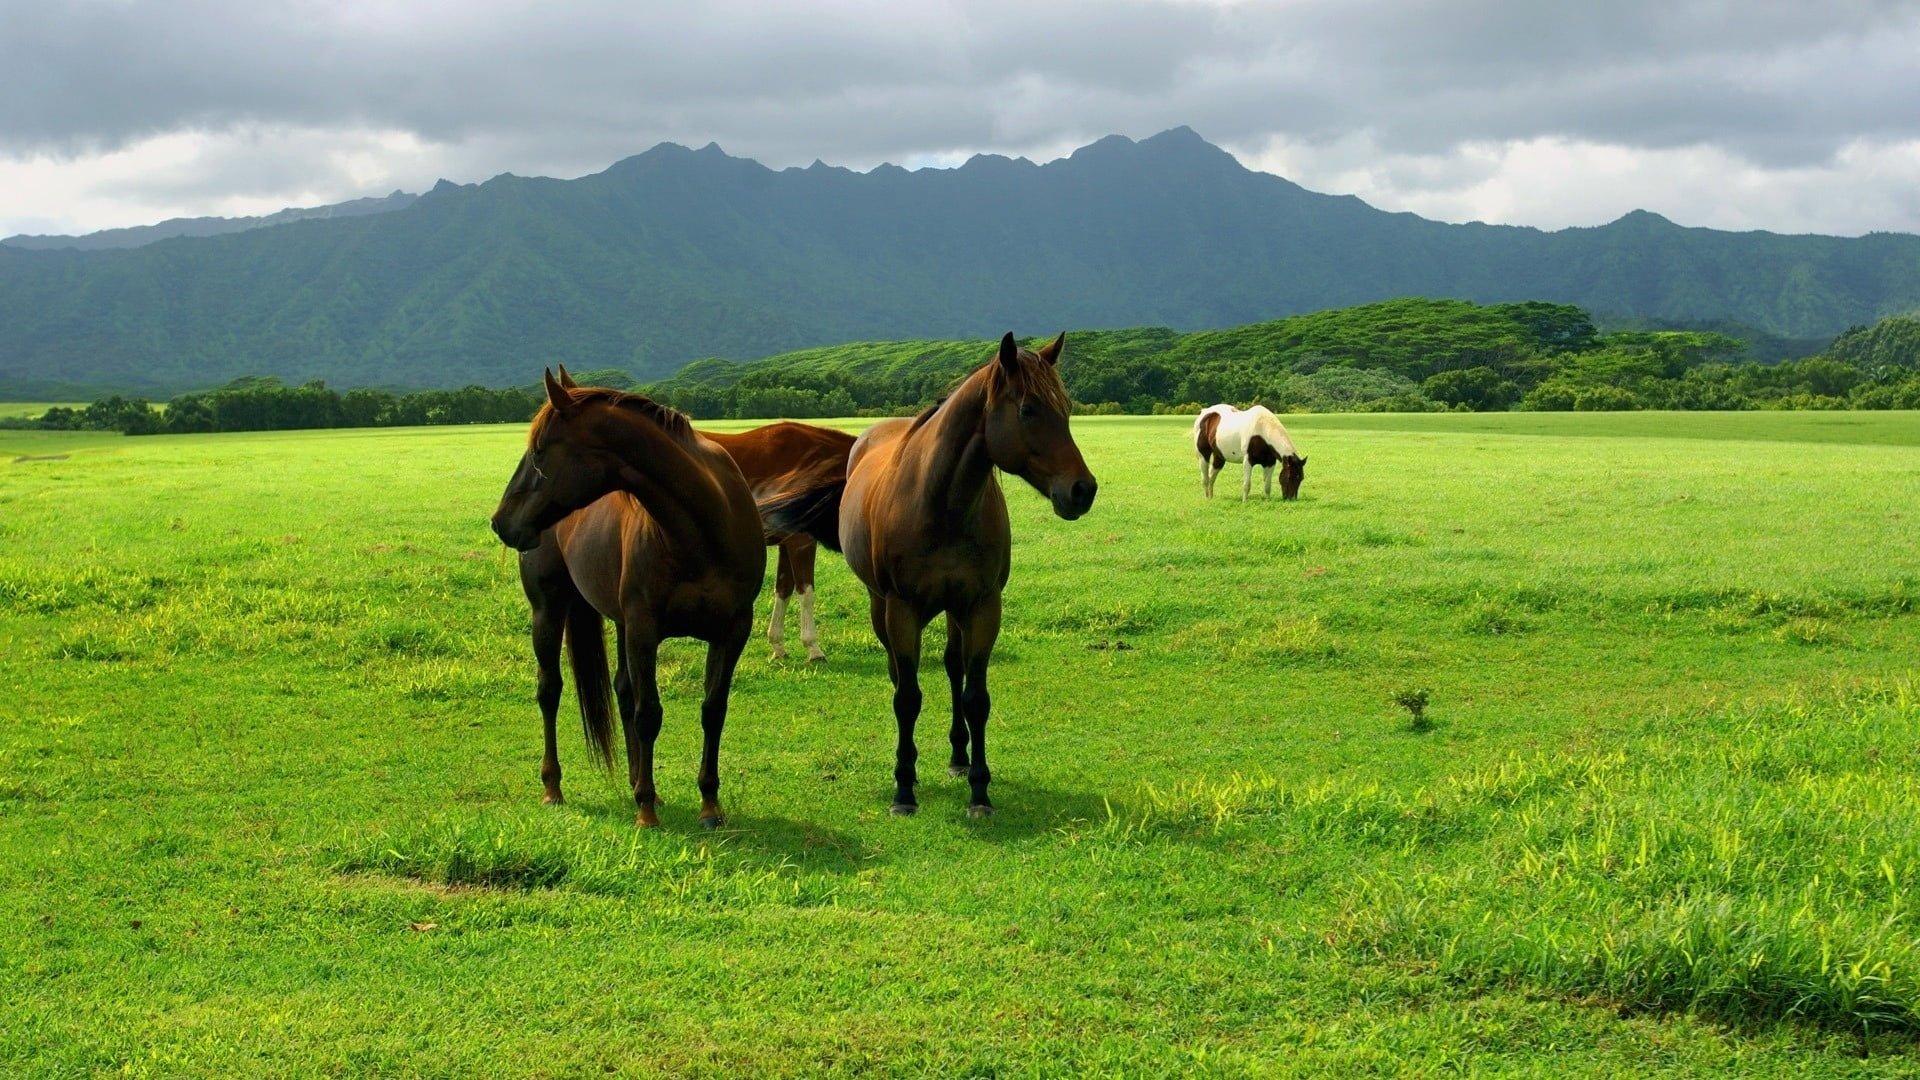 Two brown horse standing of grass field HD wallpaper | Wallpaper Flare